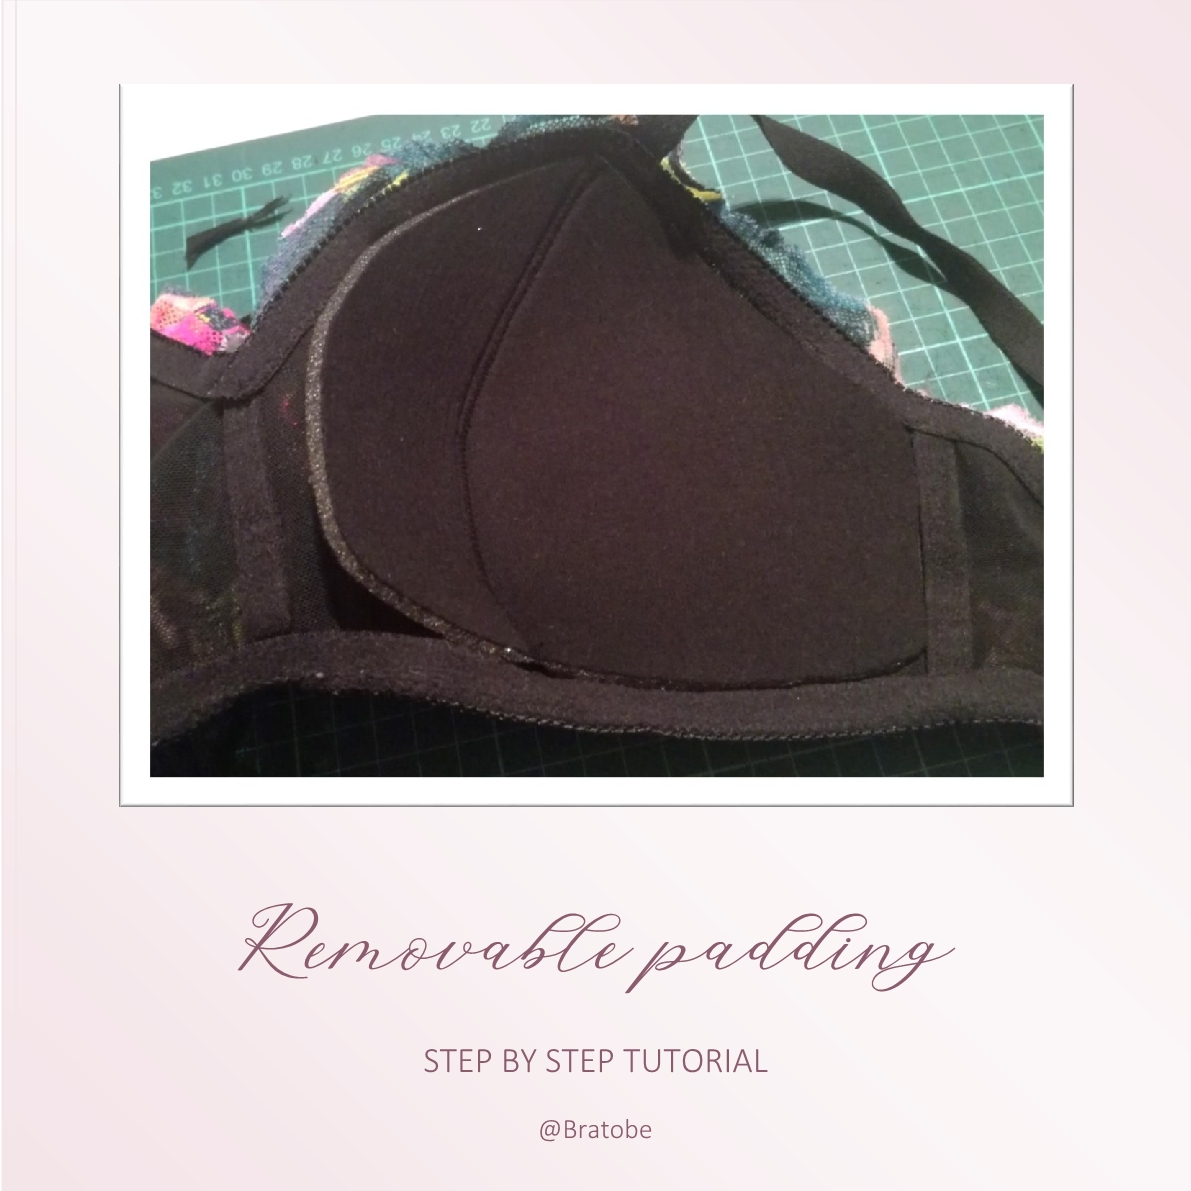 How to make removable padding for your bralette